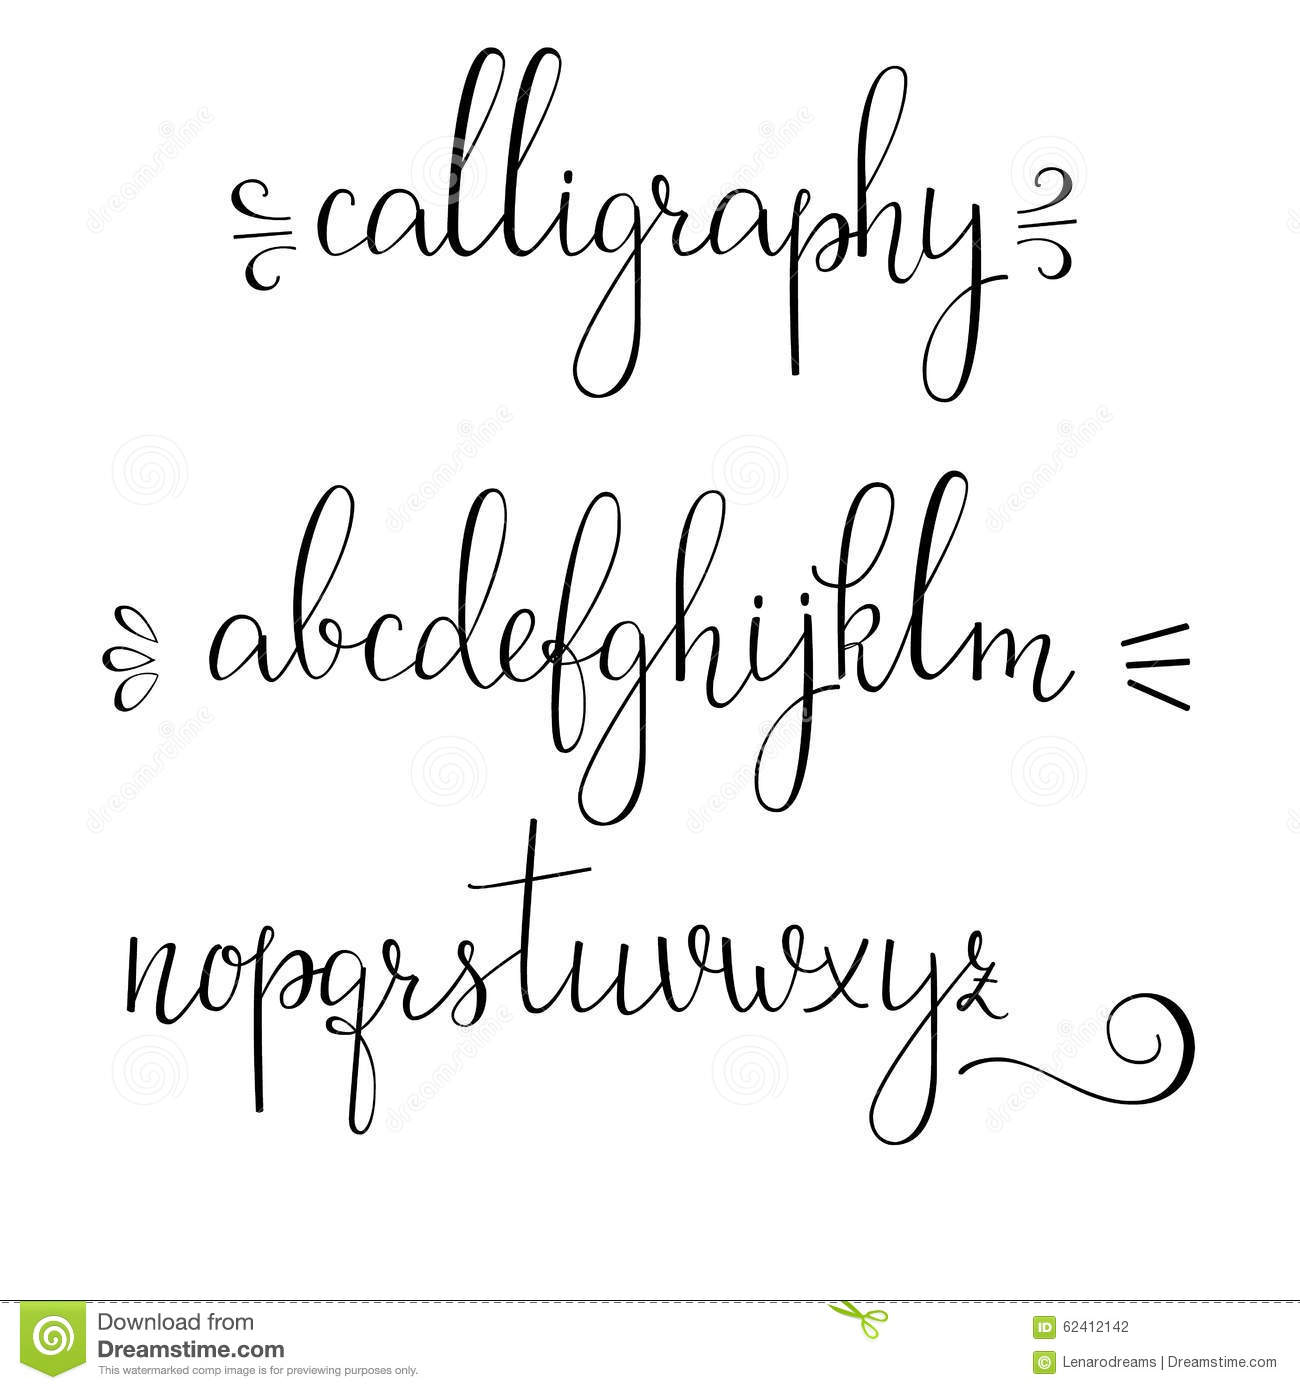 Handwritten Pointed Pen Ink Style Modern Calligraphy Cursive Font Alphabet Cute Letters And Flourishes Isolated Letter Elements